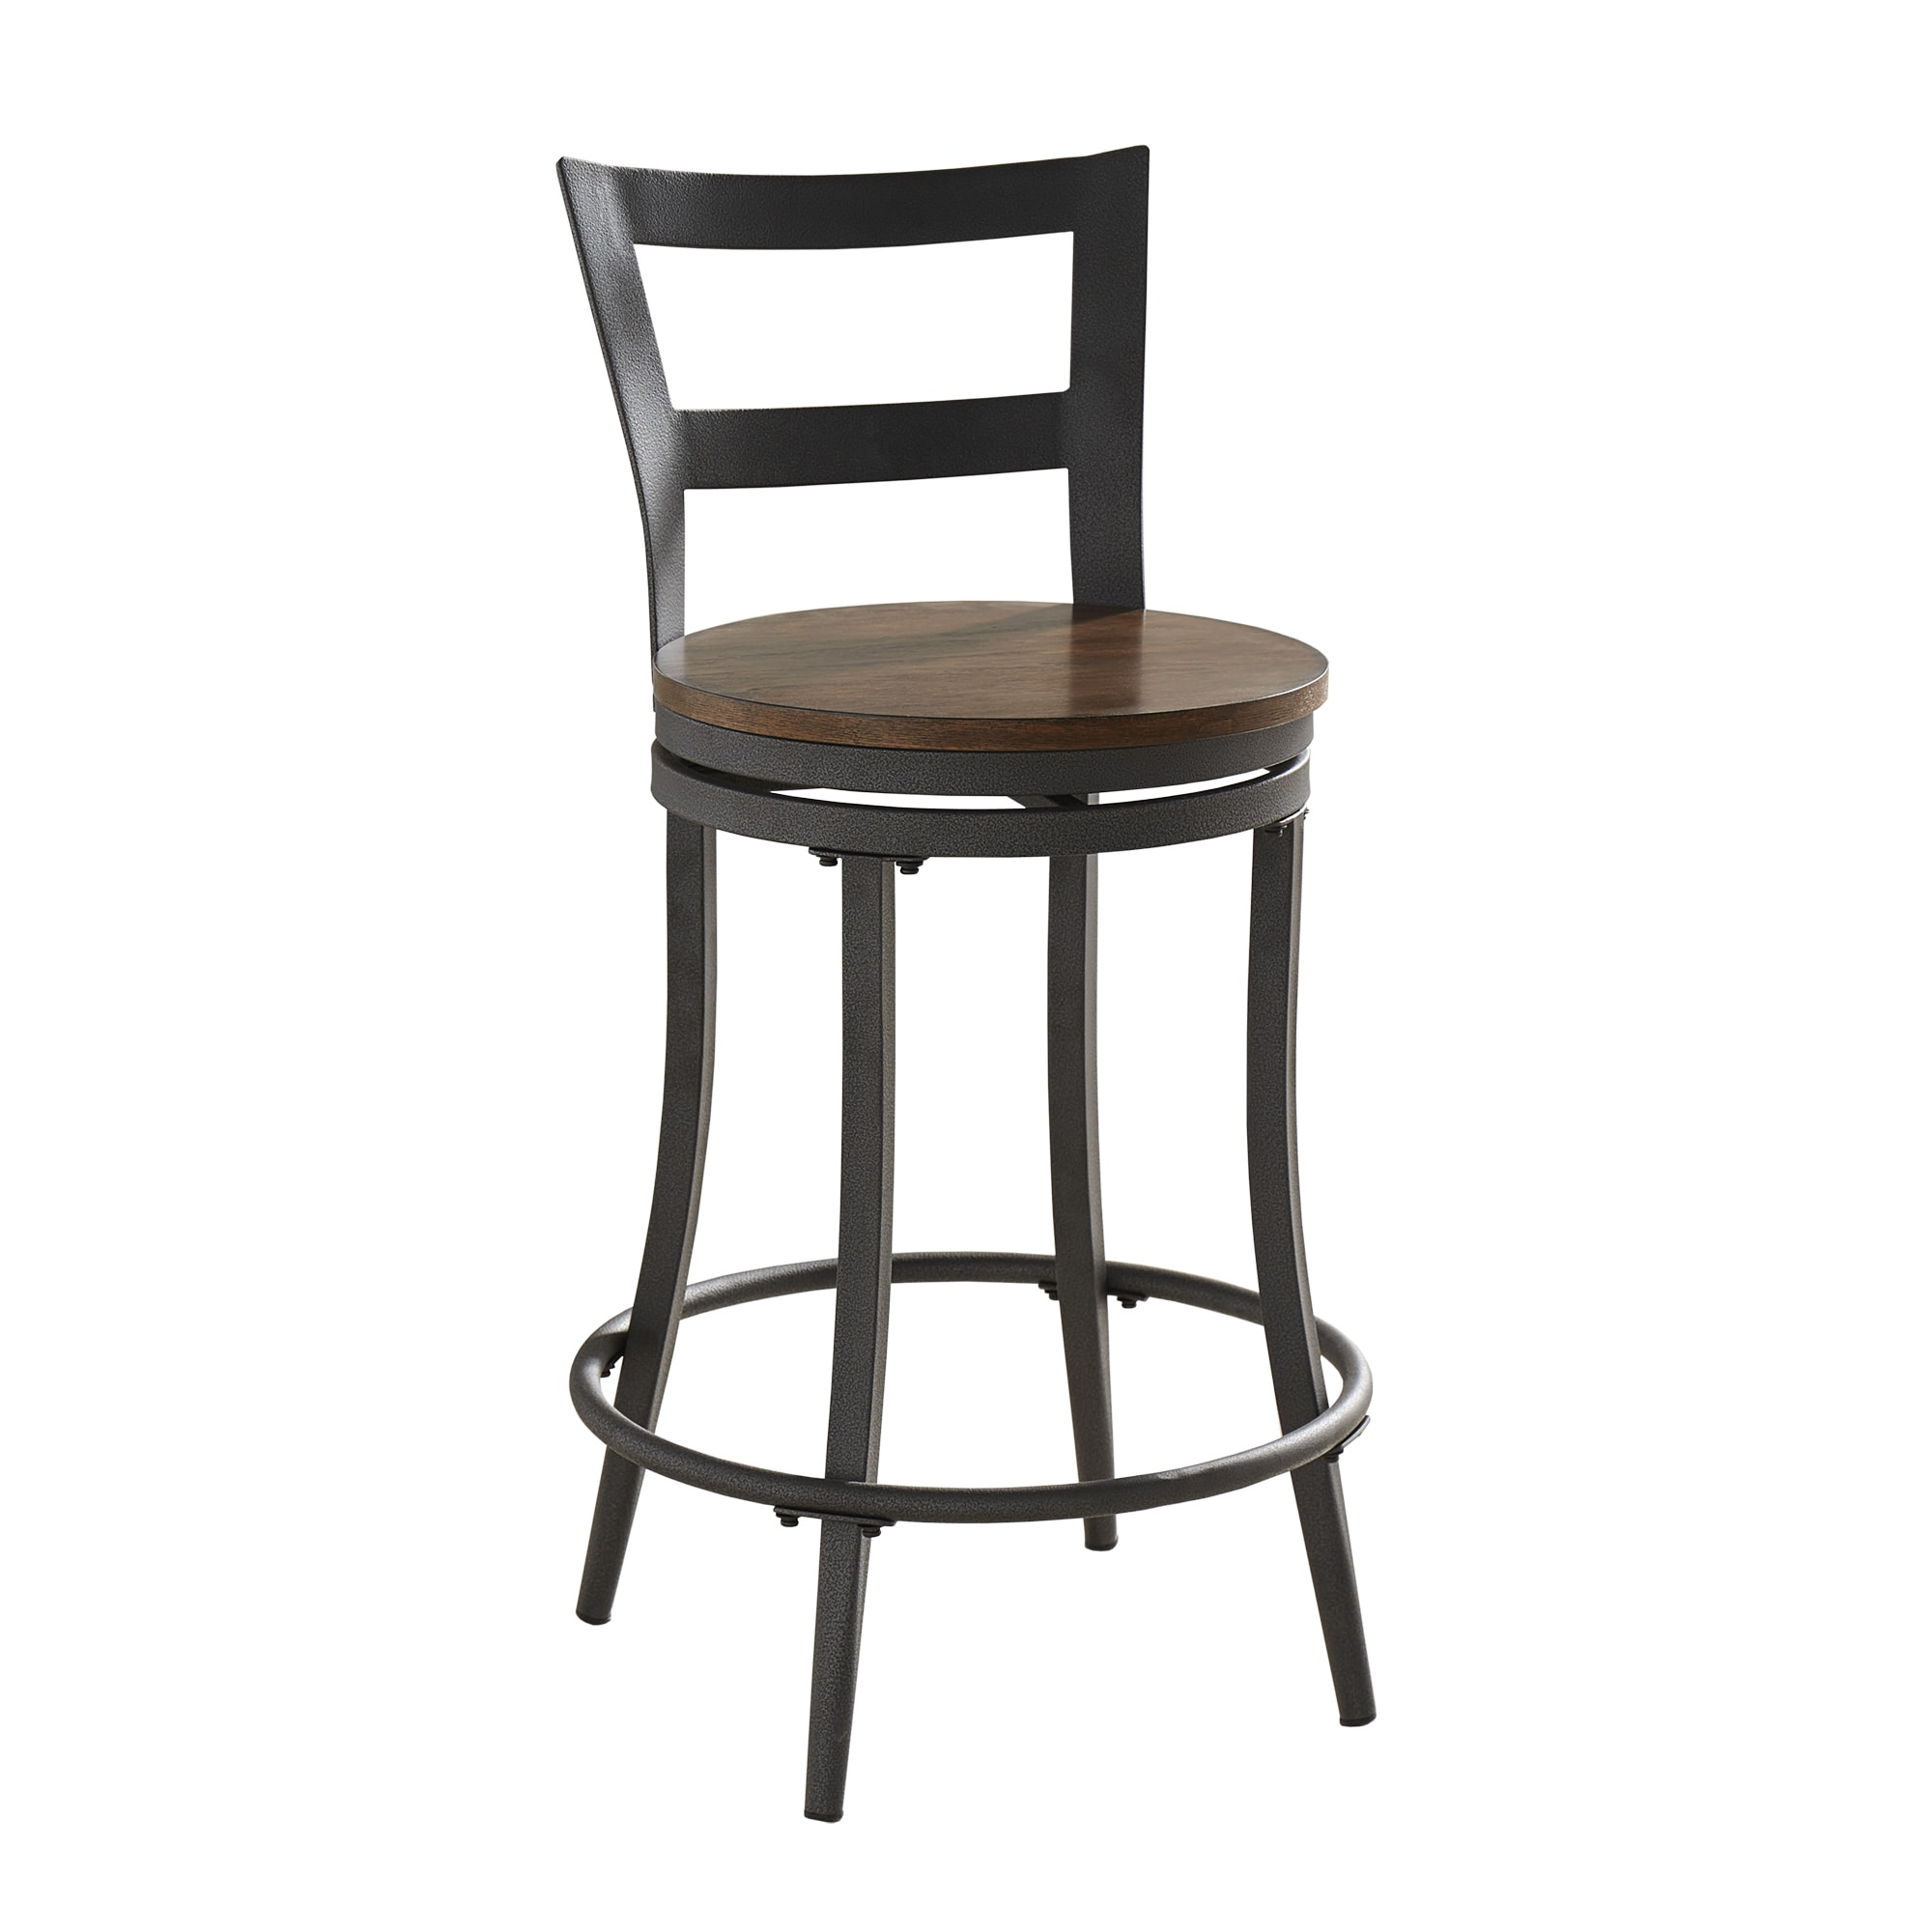 Shop Thompson Counter Height Swivel Stools Set Of 2 By Inspire Q